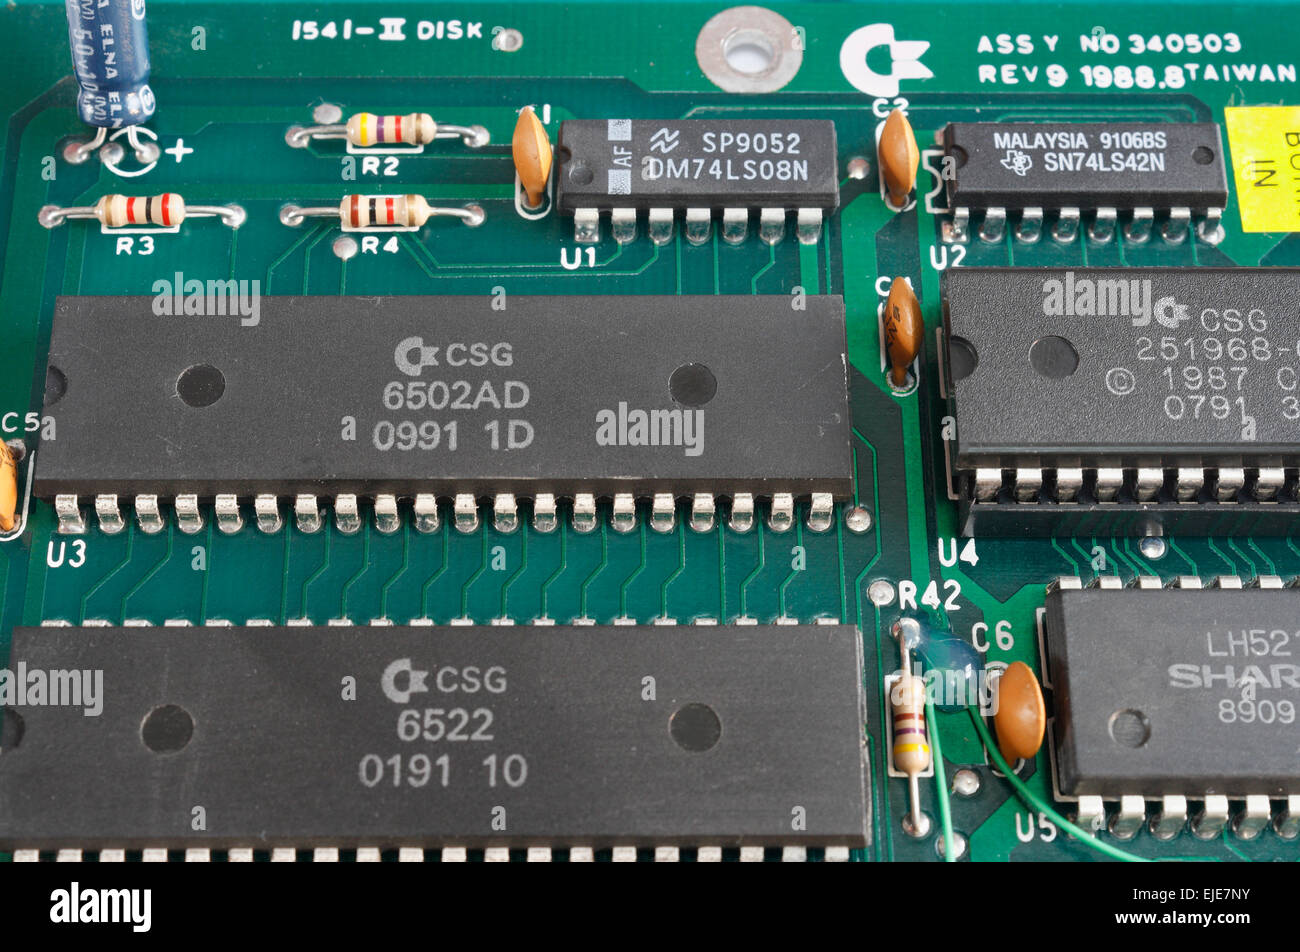 Printed Circuit Board With Integrated Circuits 6502 Microprocessor Electronics Chip